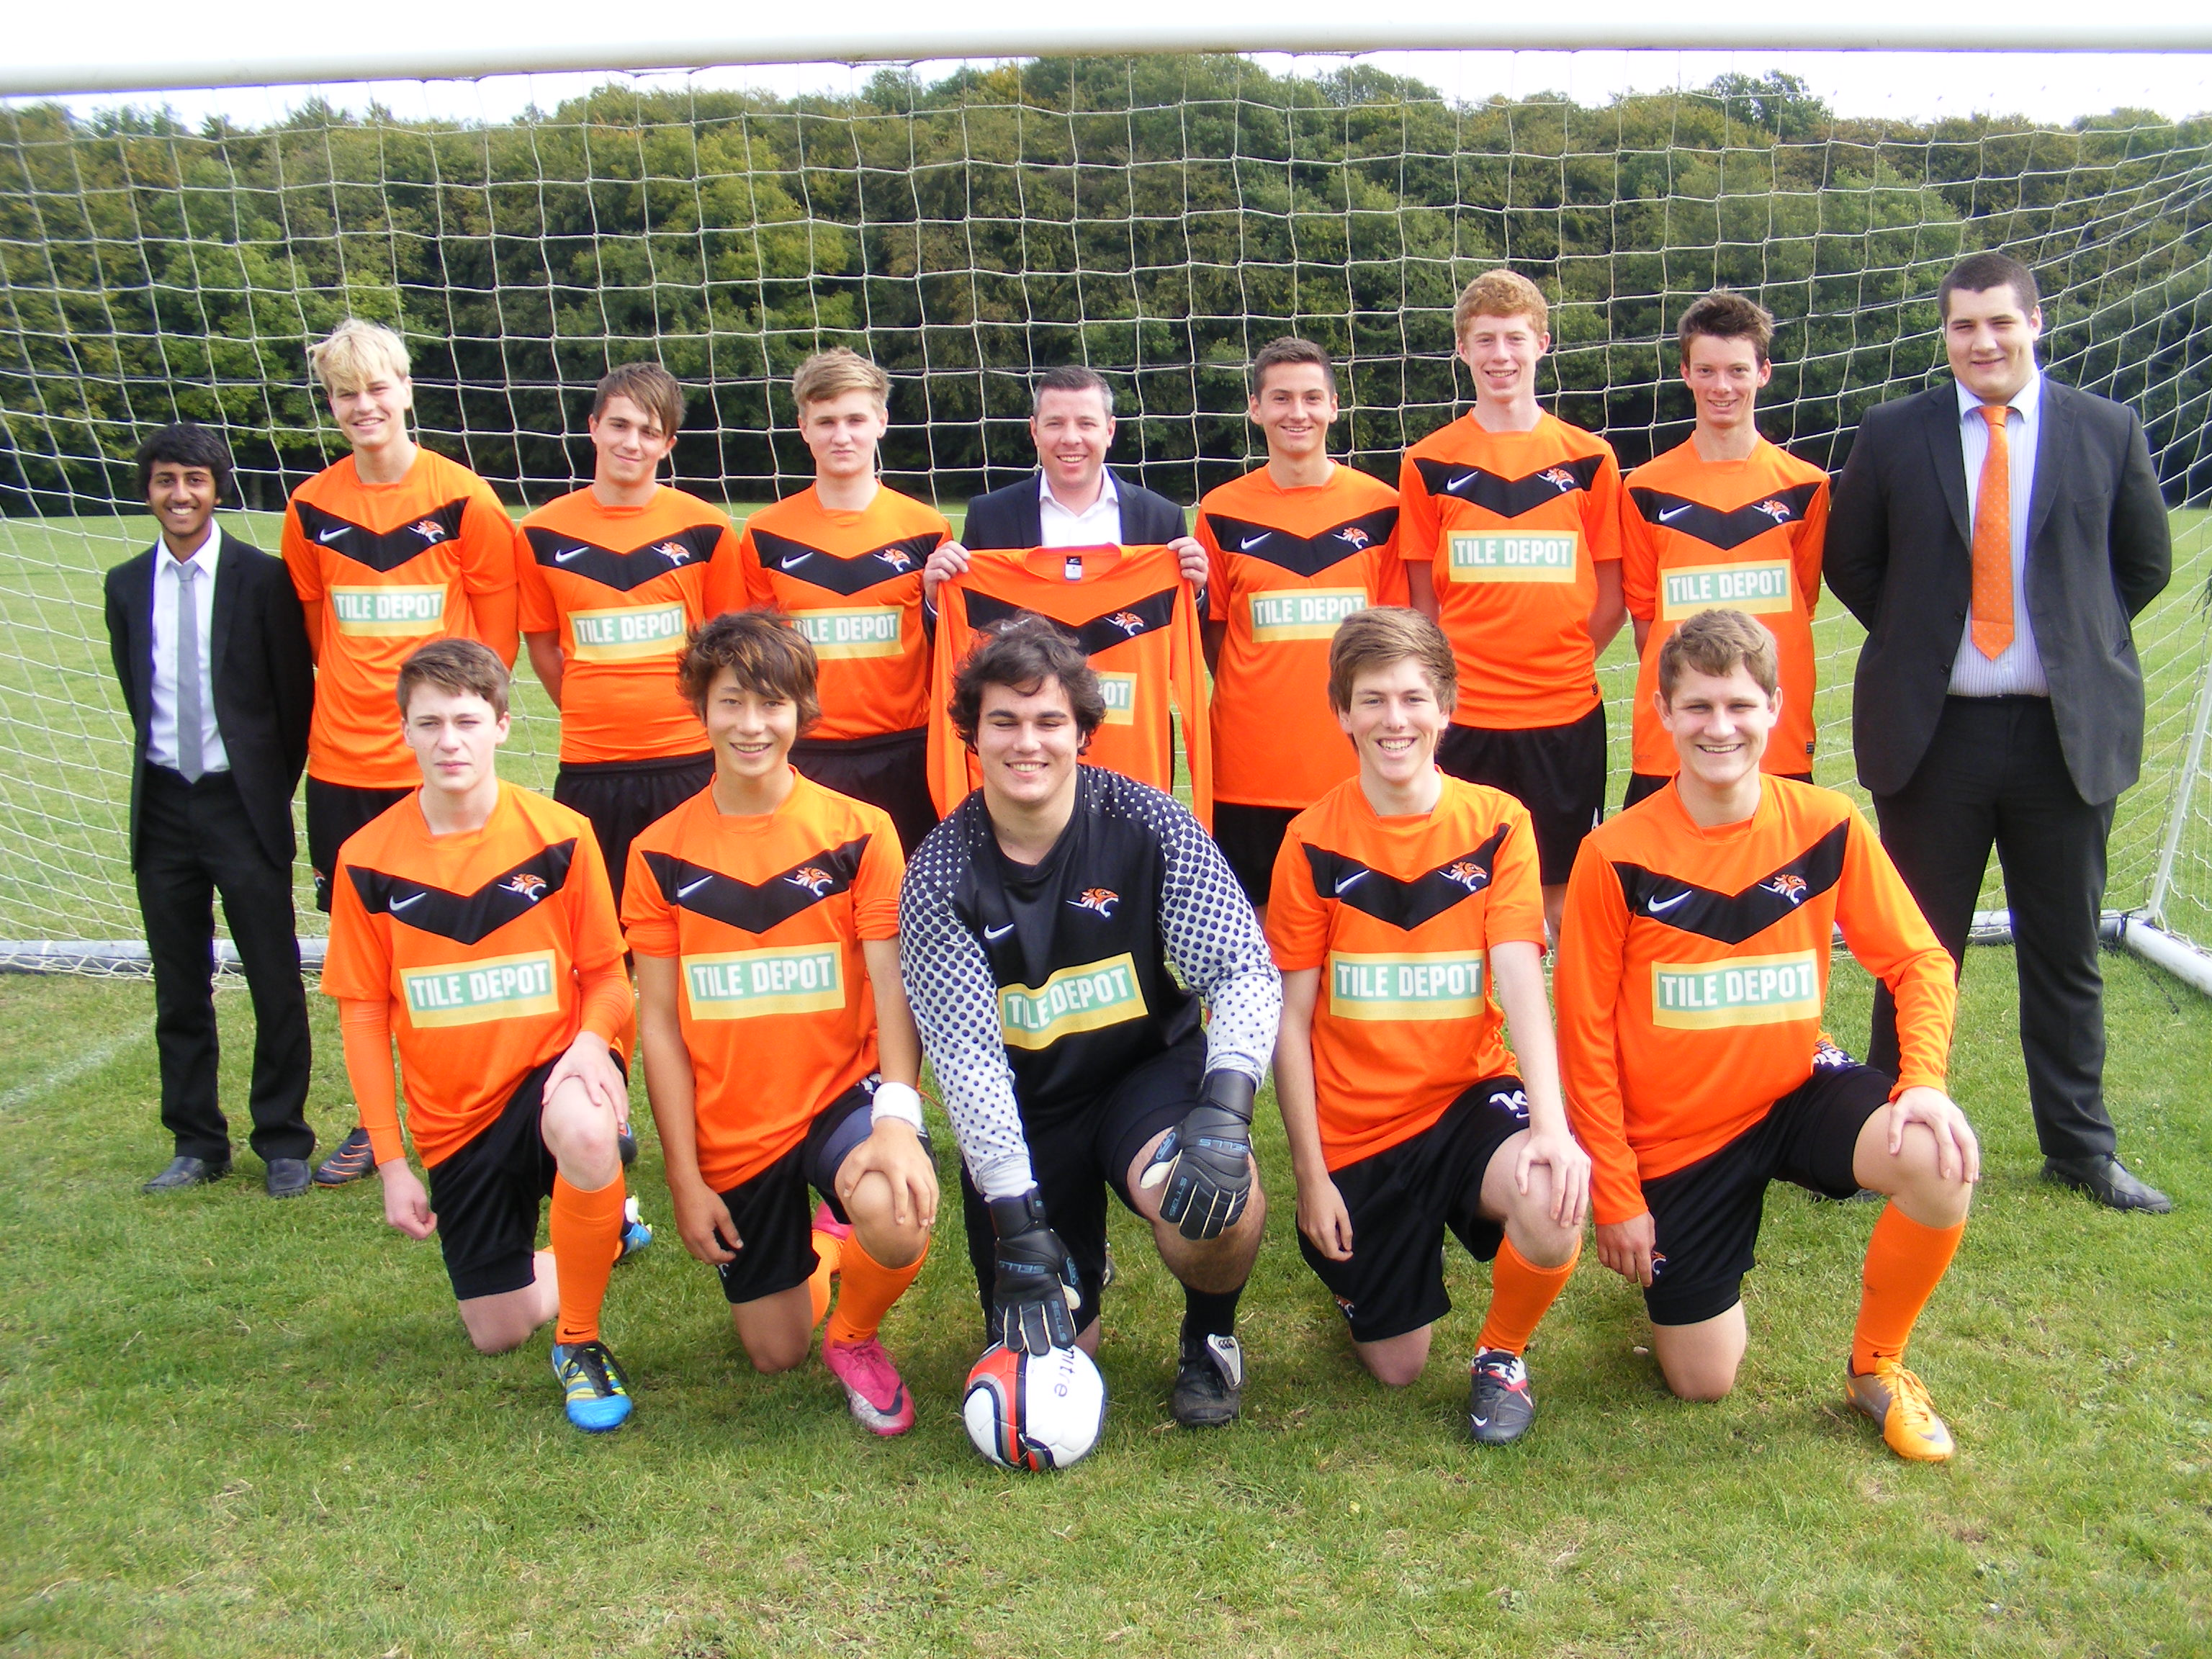 Tile Depot sponsors Wycombe Tigers Youth FC  